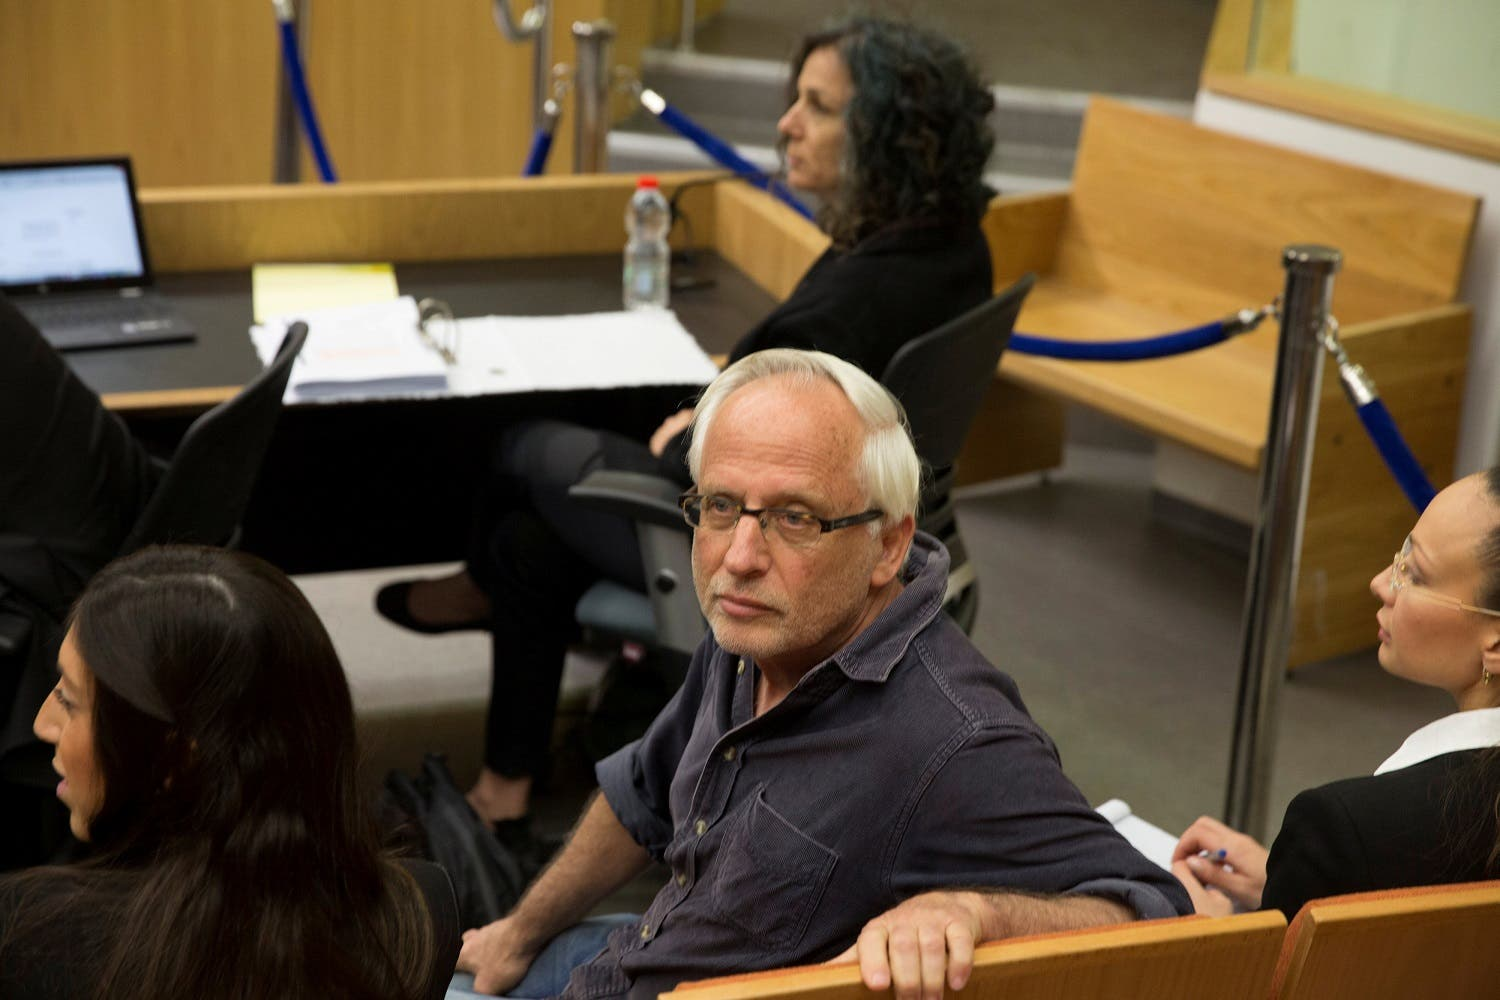 Israeli journalist Yigal Sarna is seen before the arrival of Israeli Prime Minister Benjamin Netanyahu and his wife Sara (not seen) to testify in a libel lawsuit in a Tel Aviv court. (Reuters)